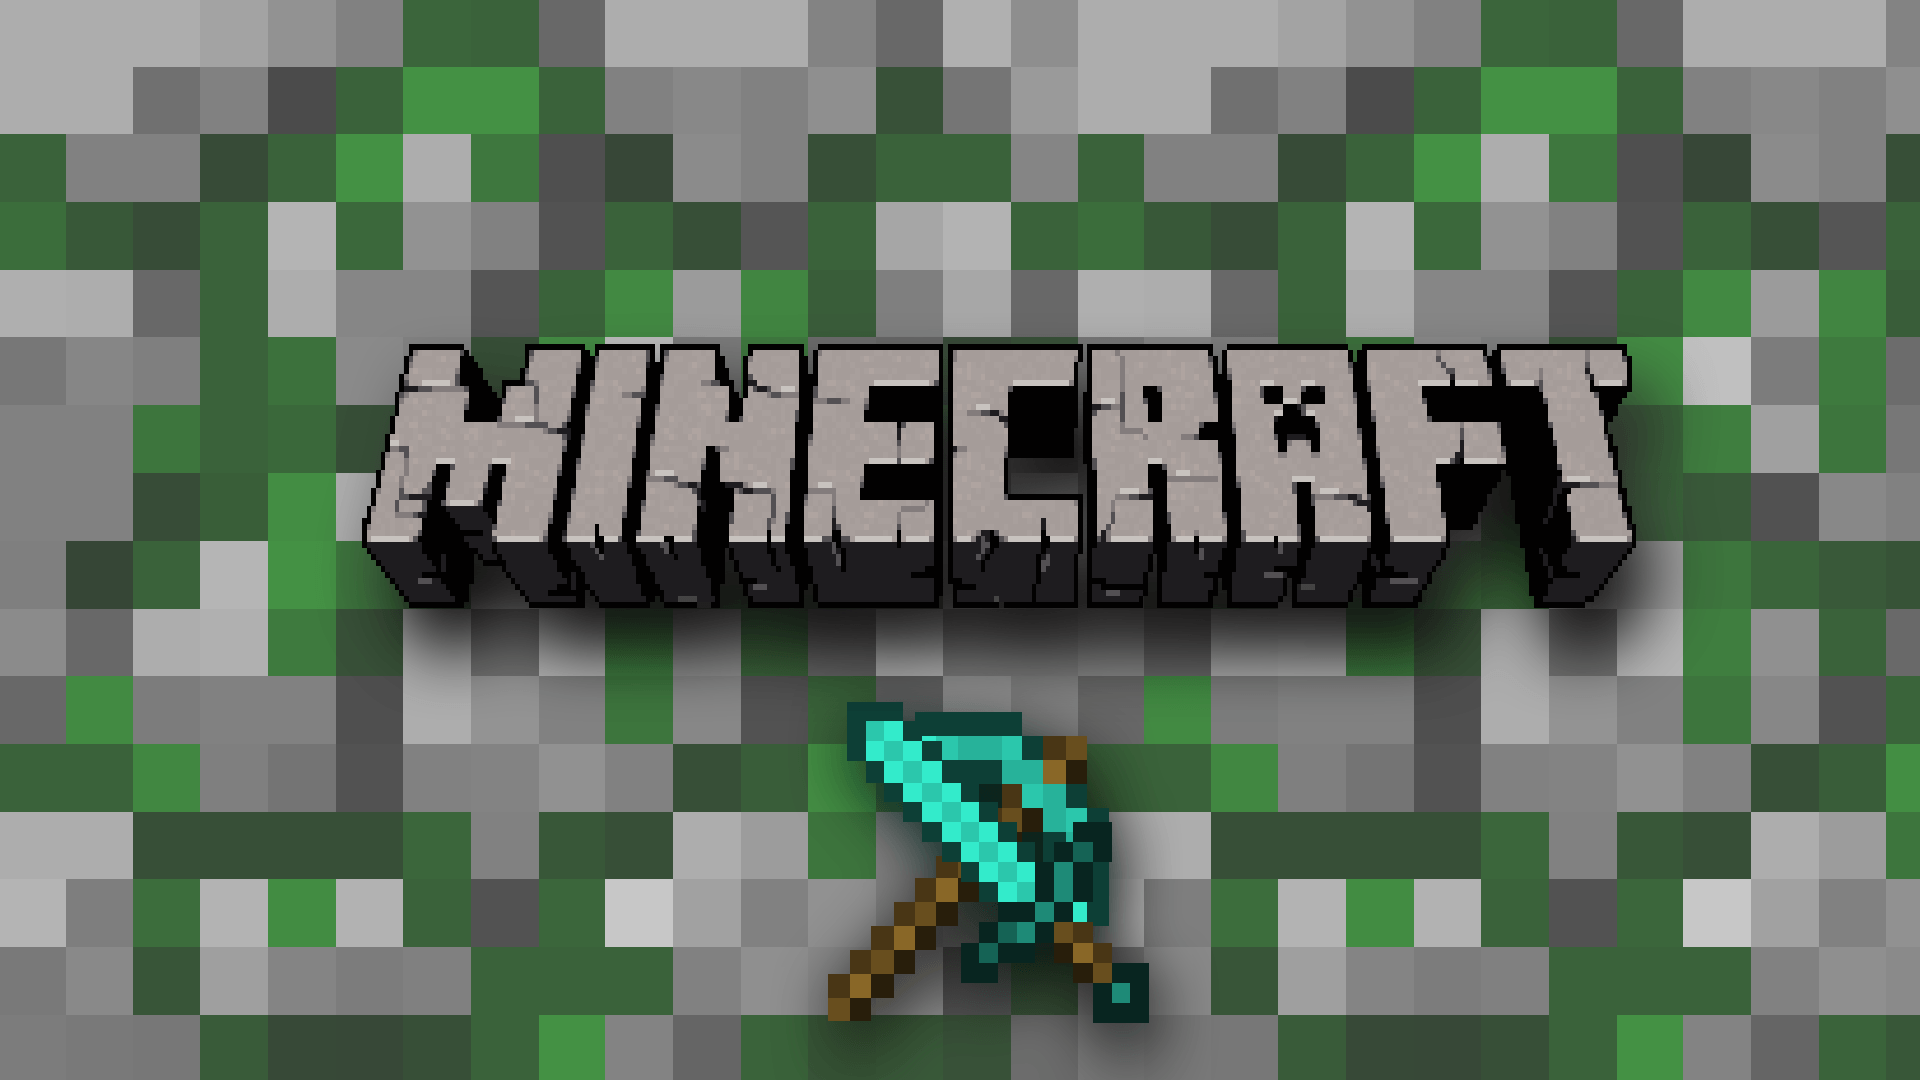 1920x1080 My Minecraft Wallpapers! - Fan Art - Show Your Creation - Minecraft ...